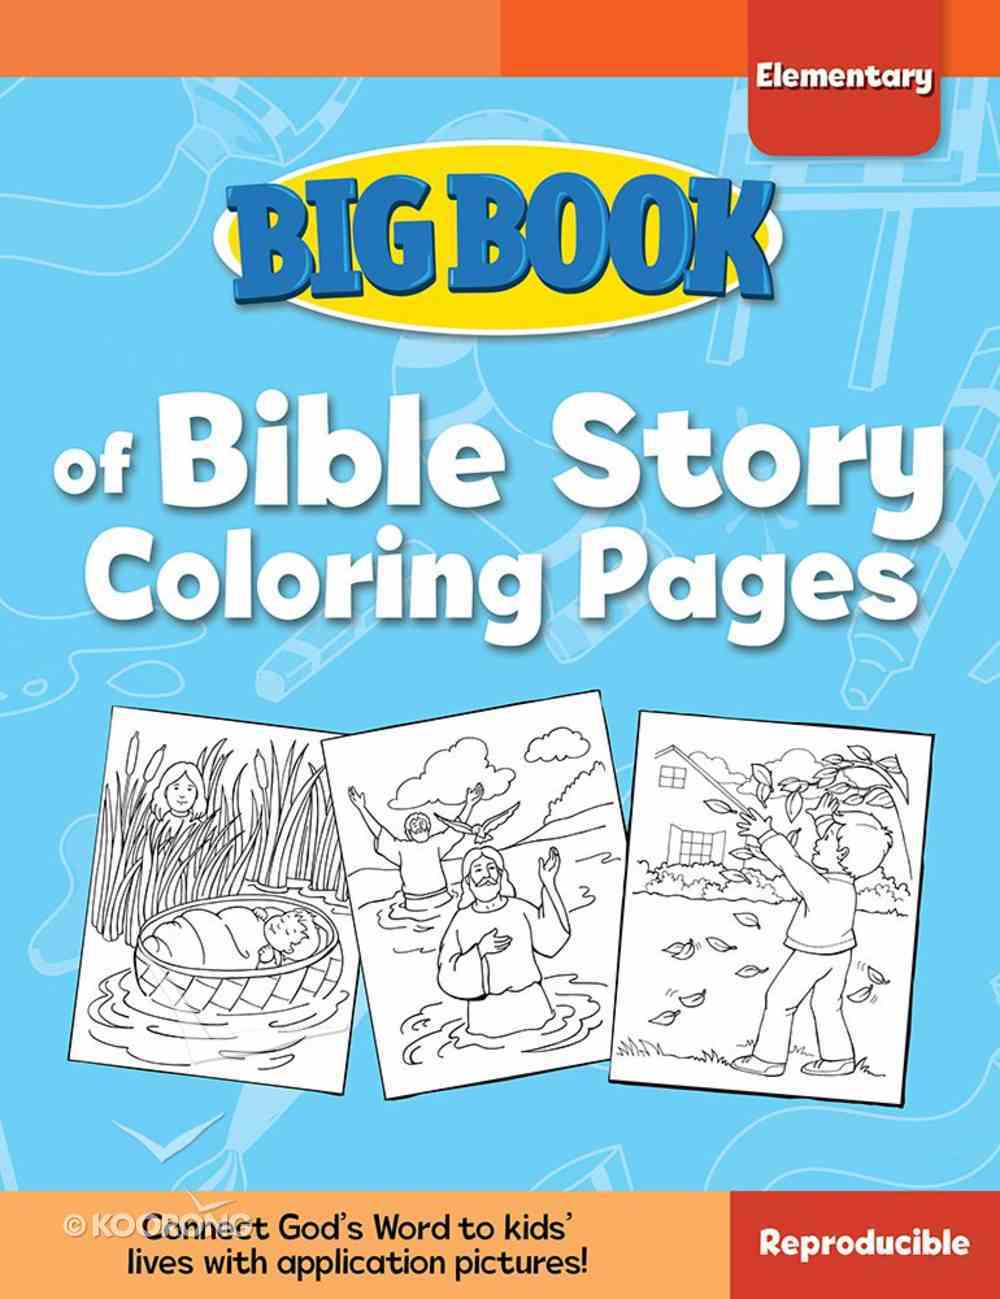 Big Book of Bible Story Coloring Pages For Elementary Kids (Reproducible) Paperback